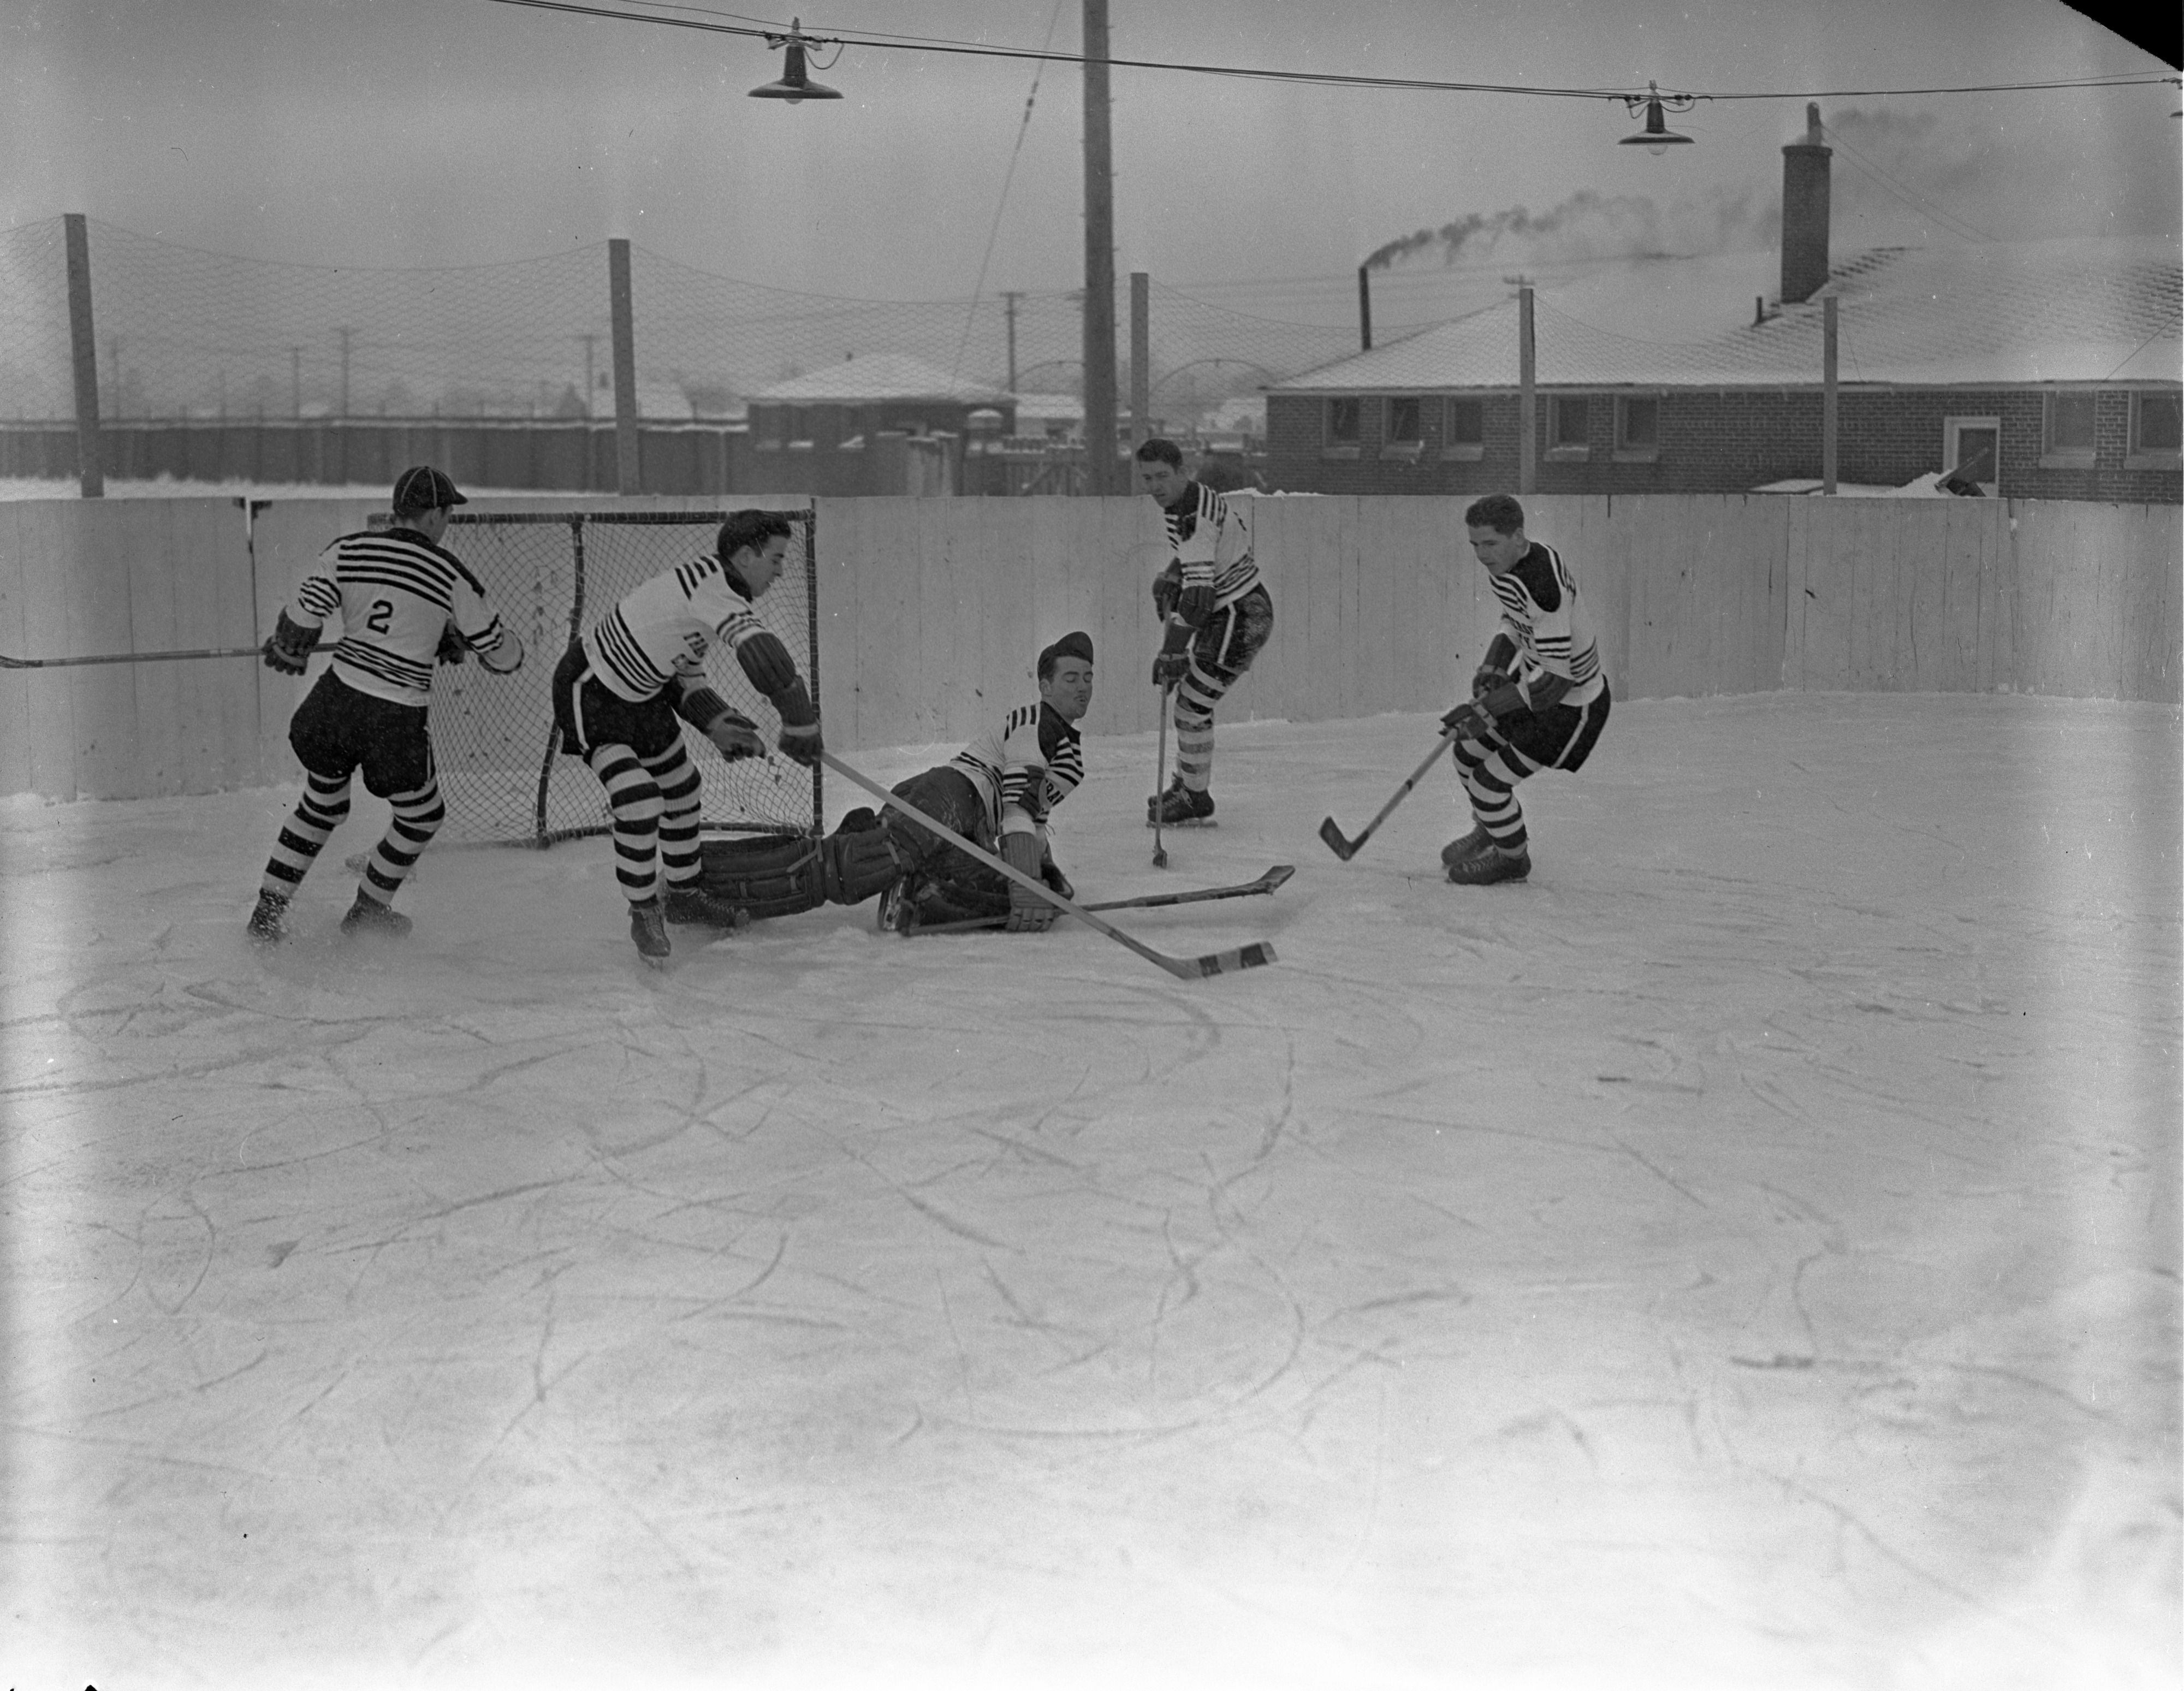 Protecting The Goal While Playing Hockey In Traverse City, January 1940 image